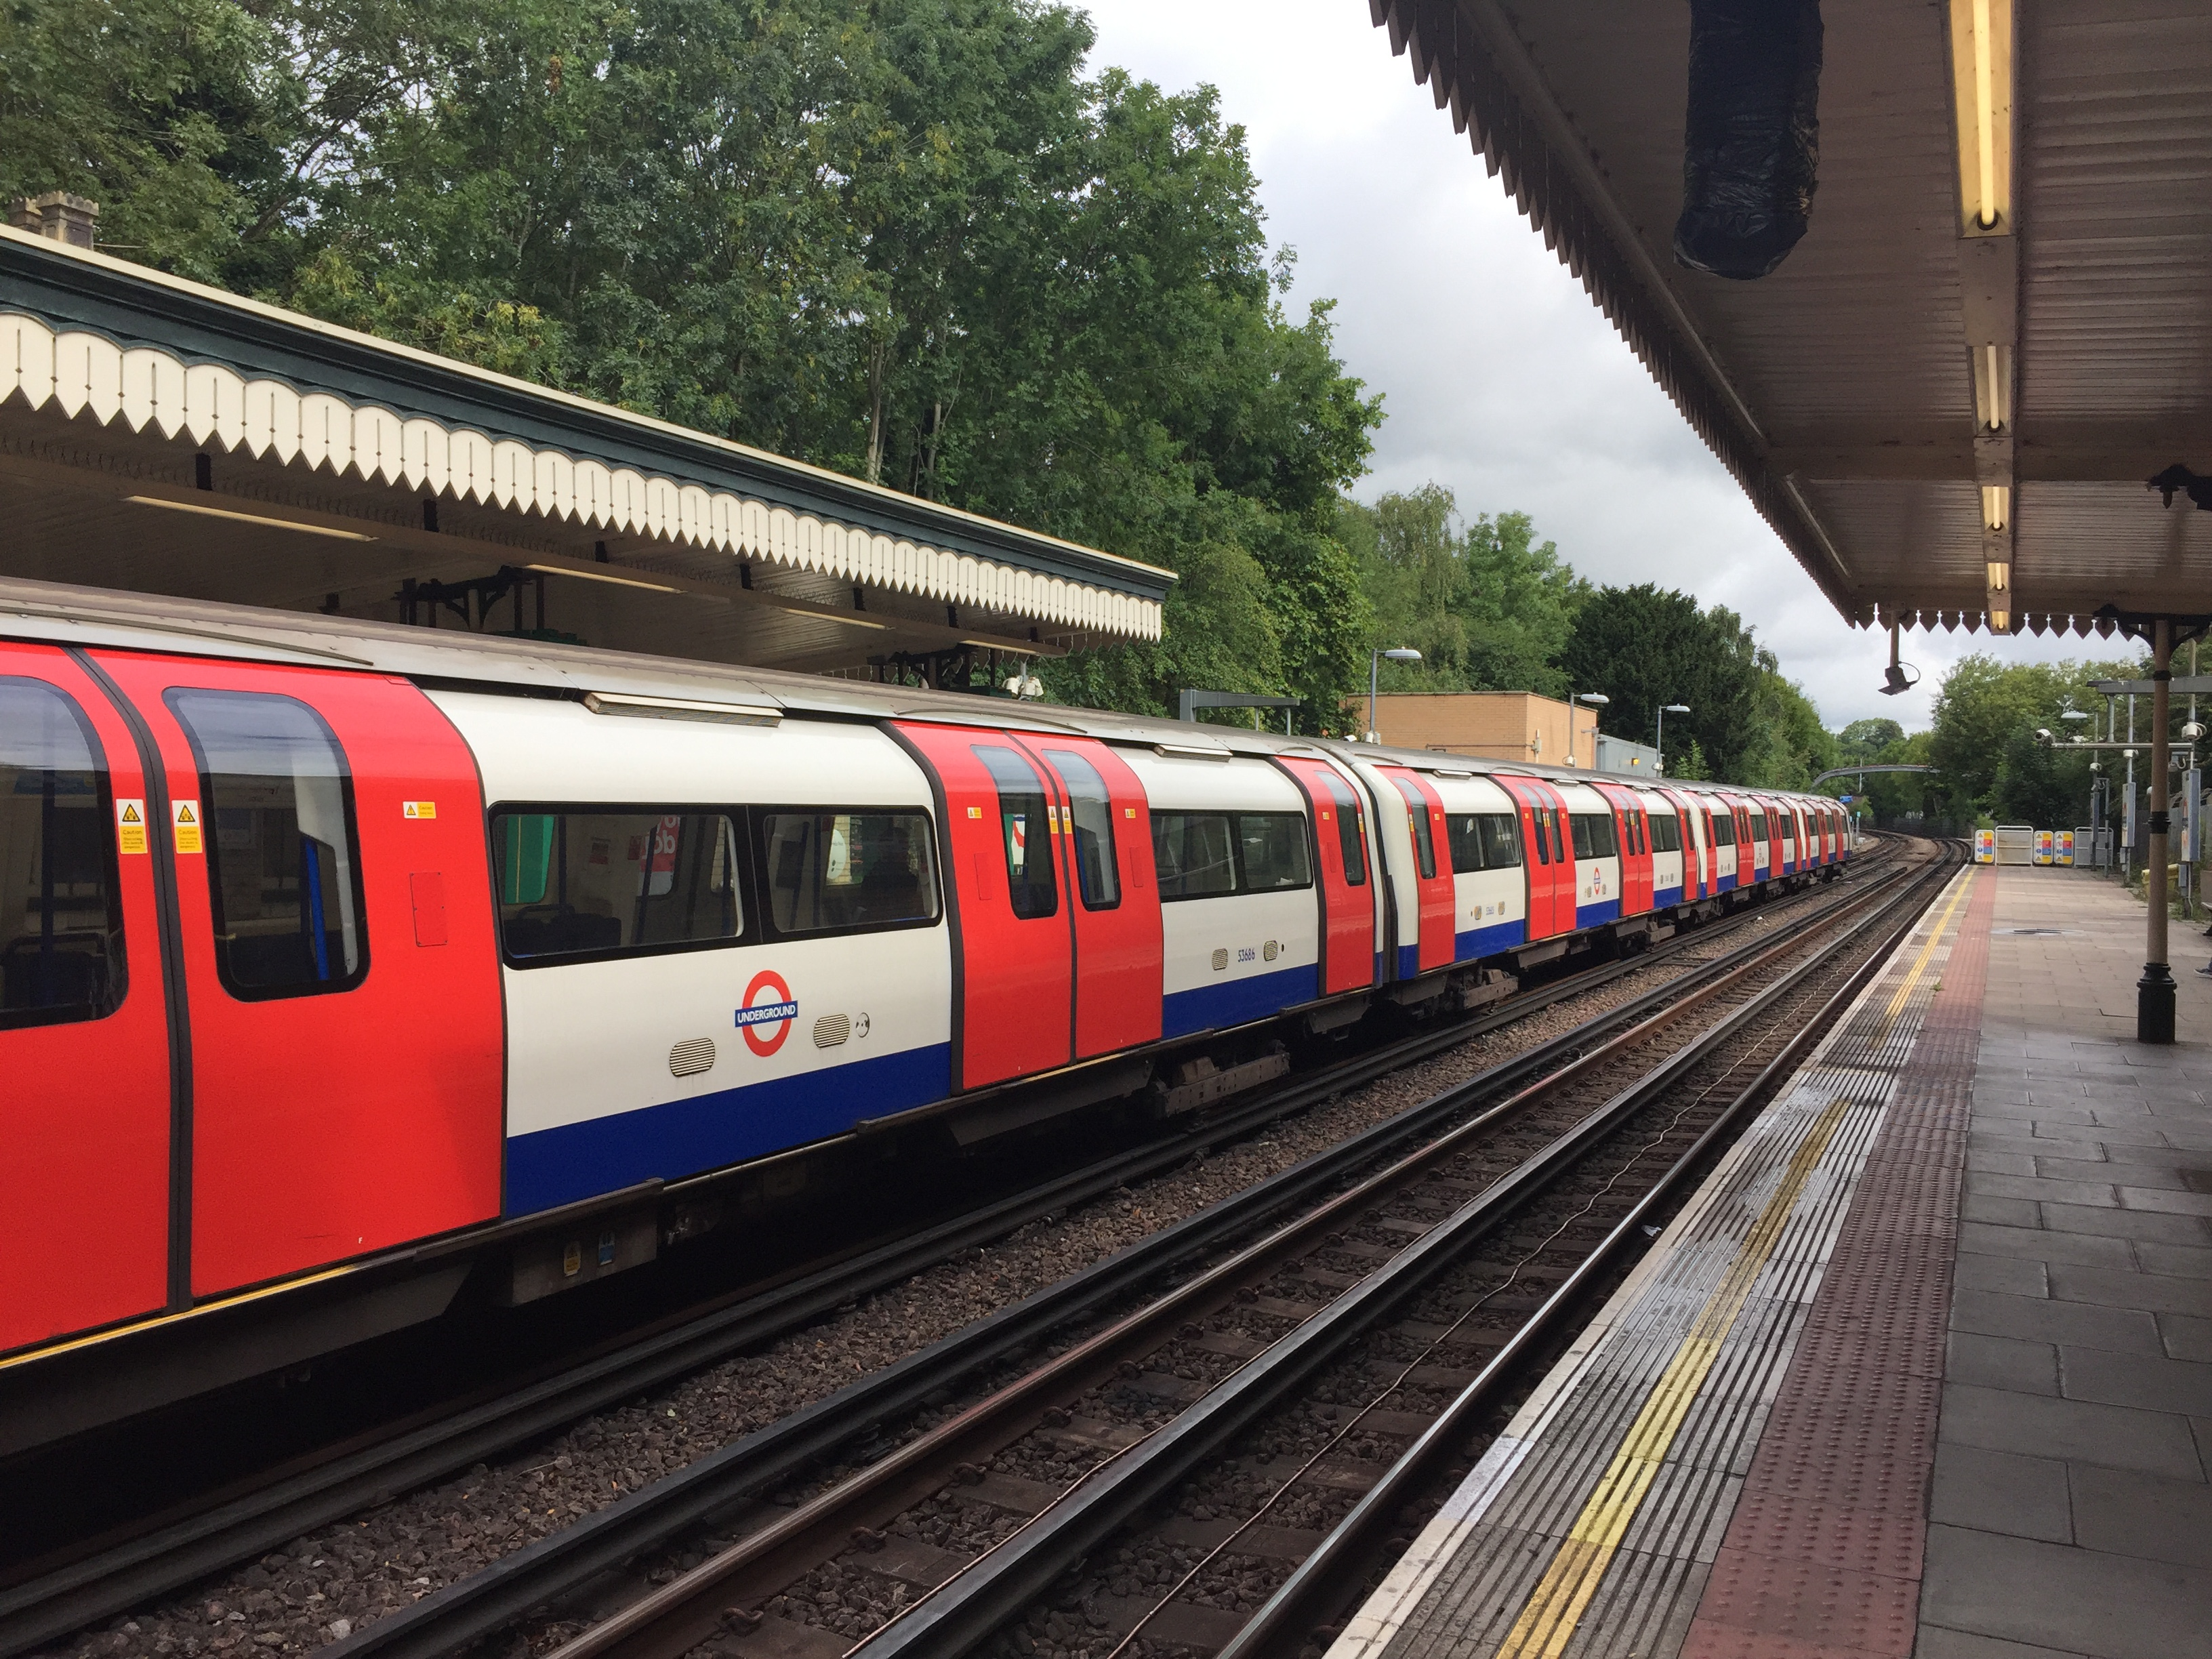 Travelling London by Tube